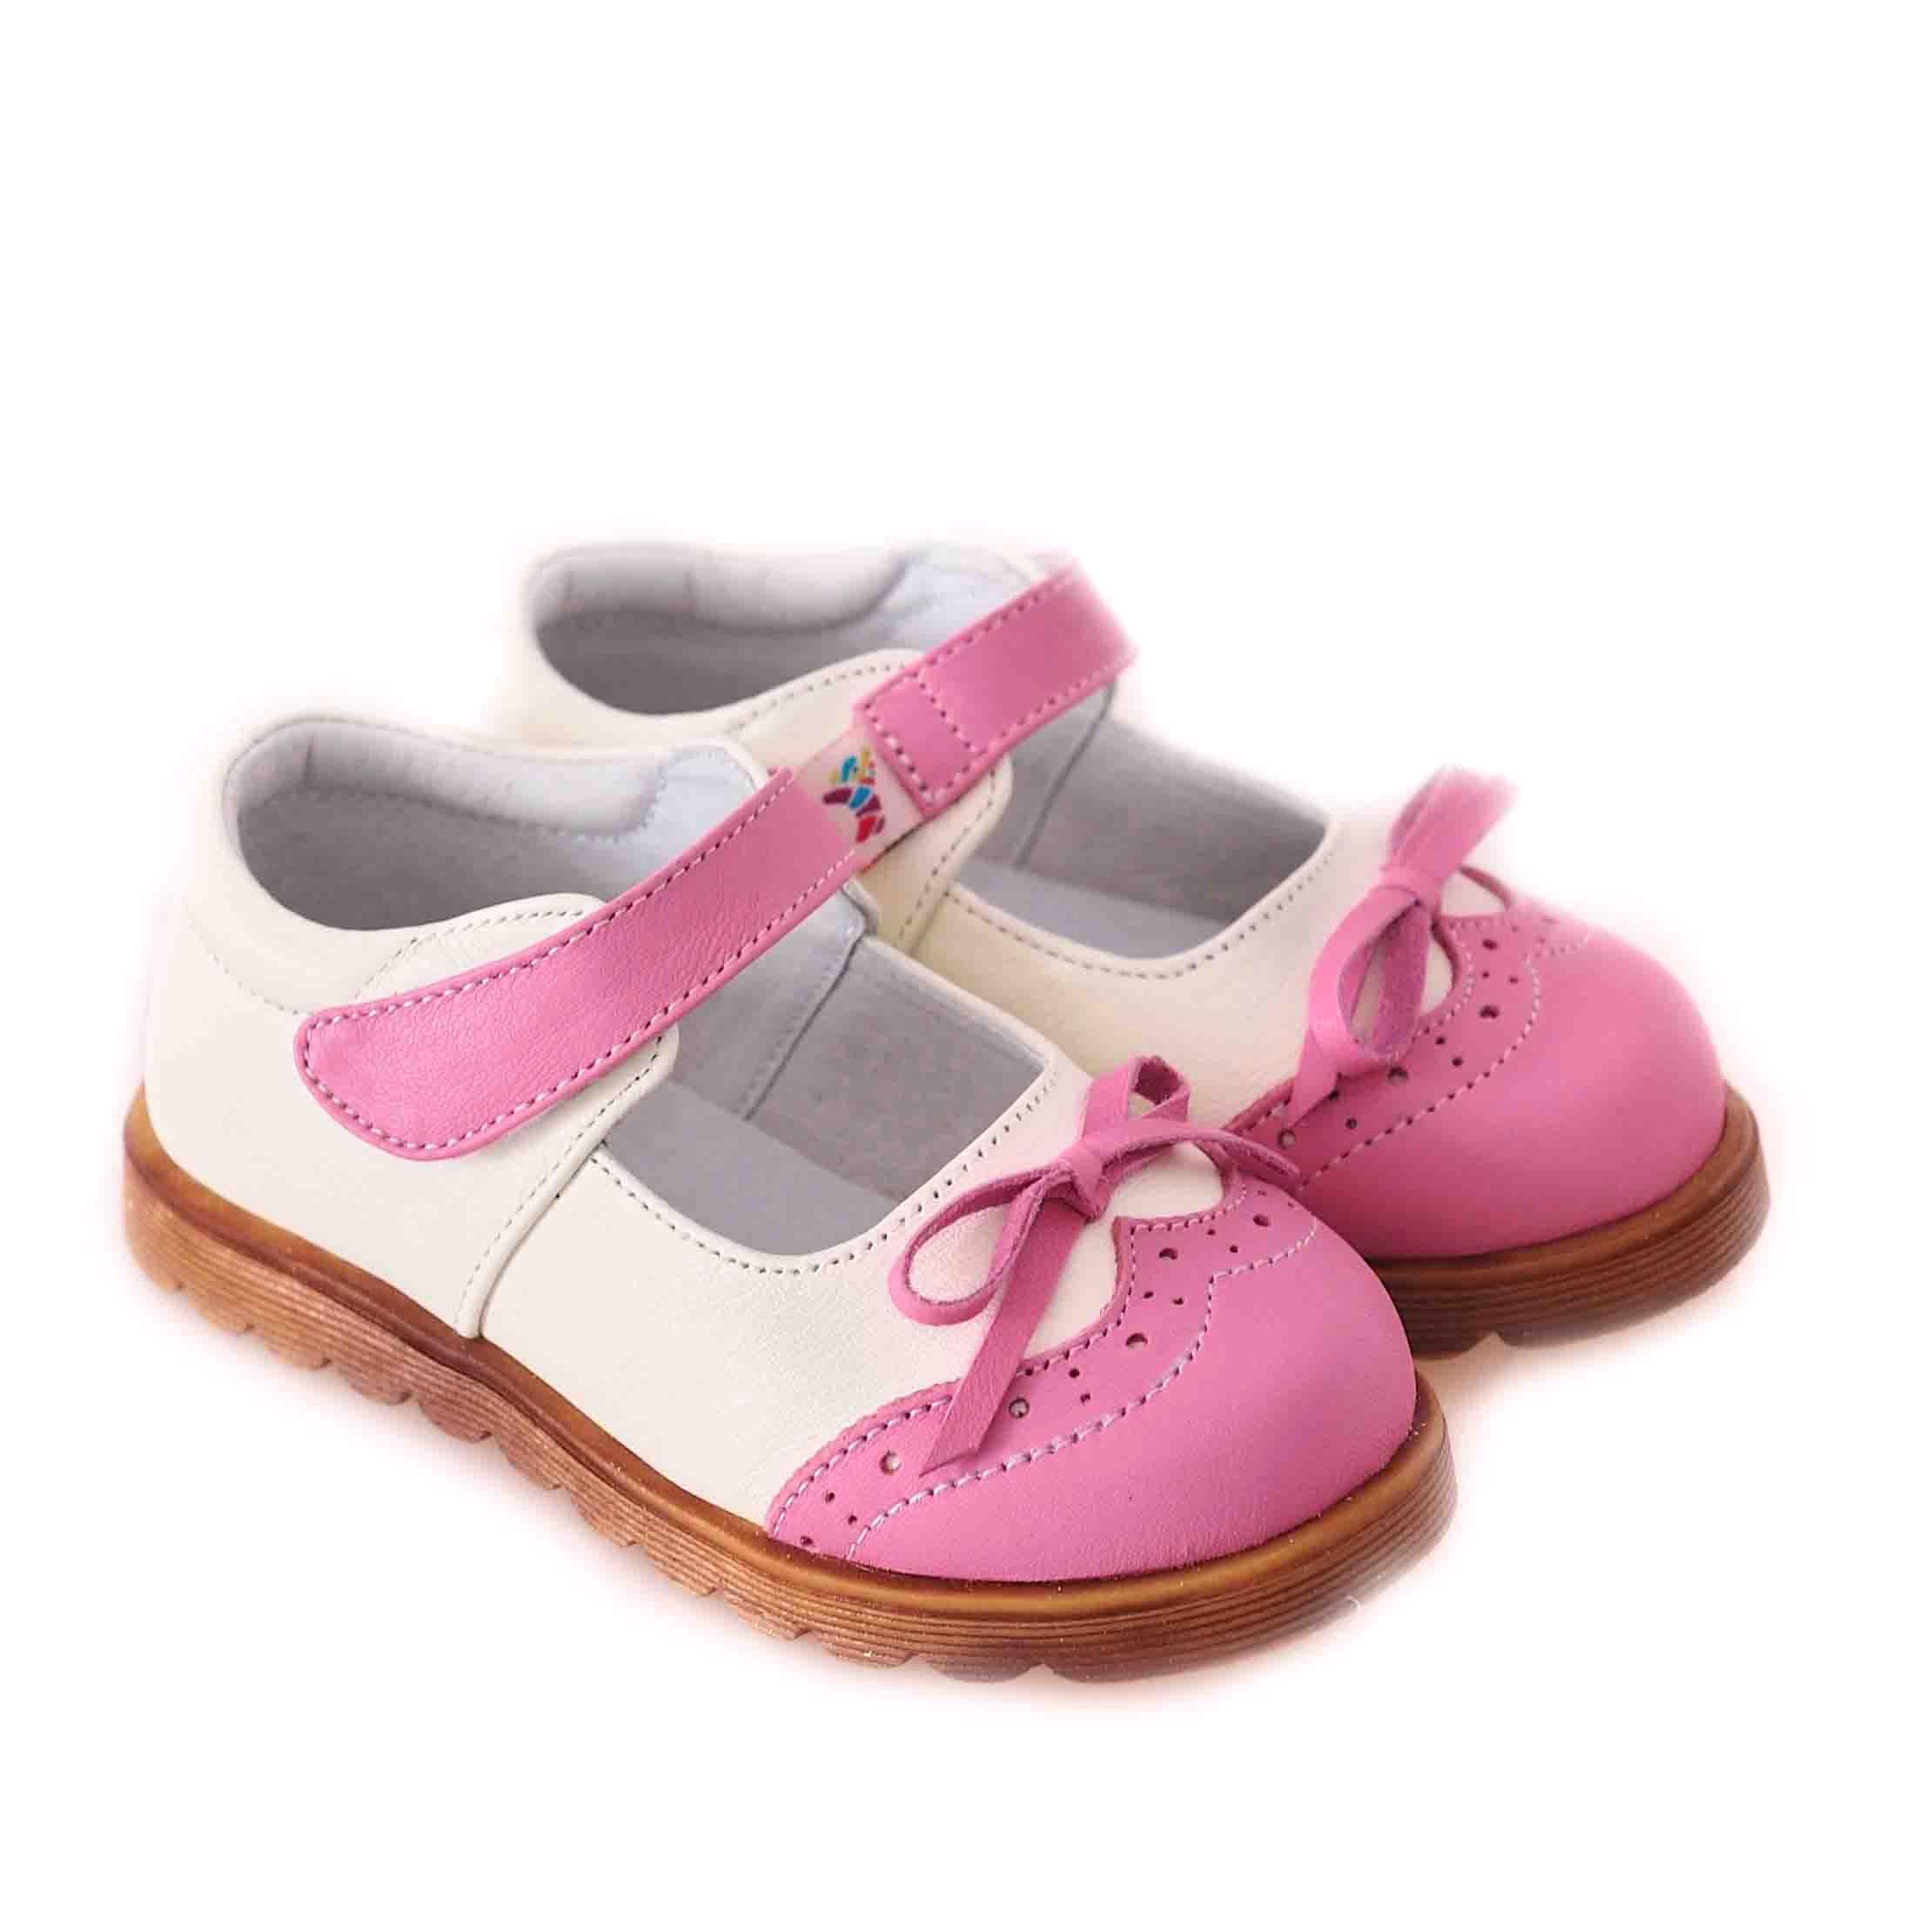 Spitz Shoes Lacoste Kids | For Kids Shoes | Pinterest | Kid ...